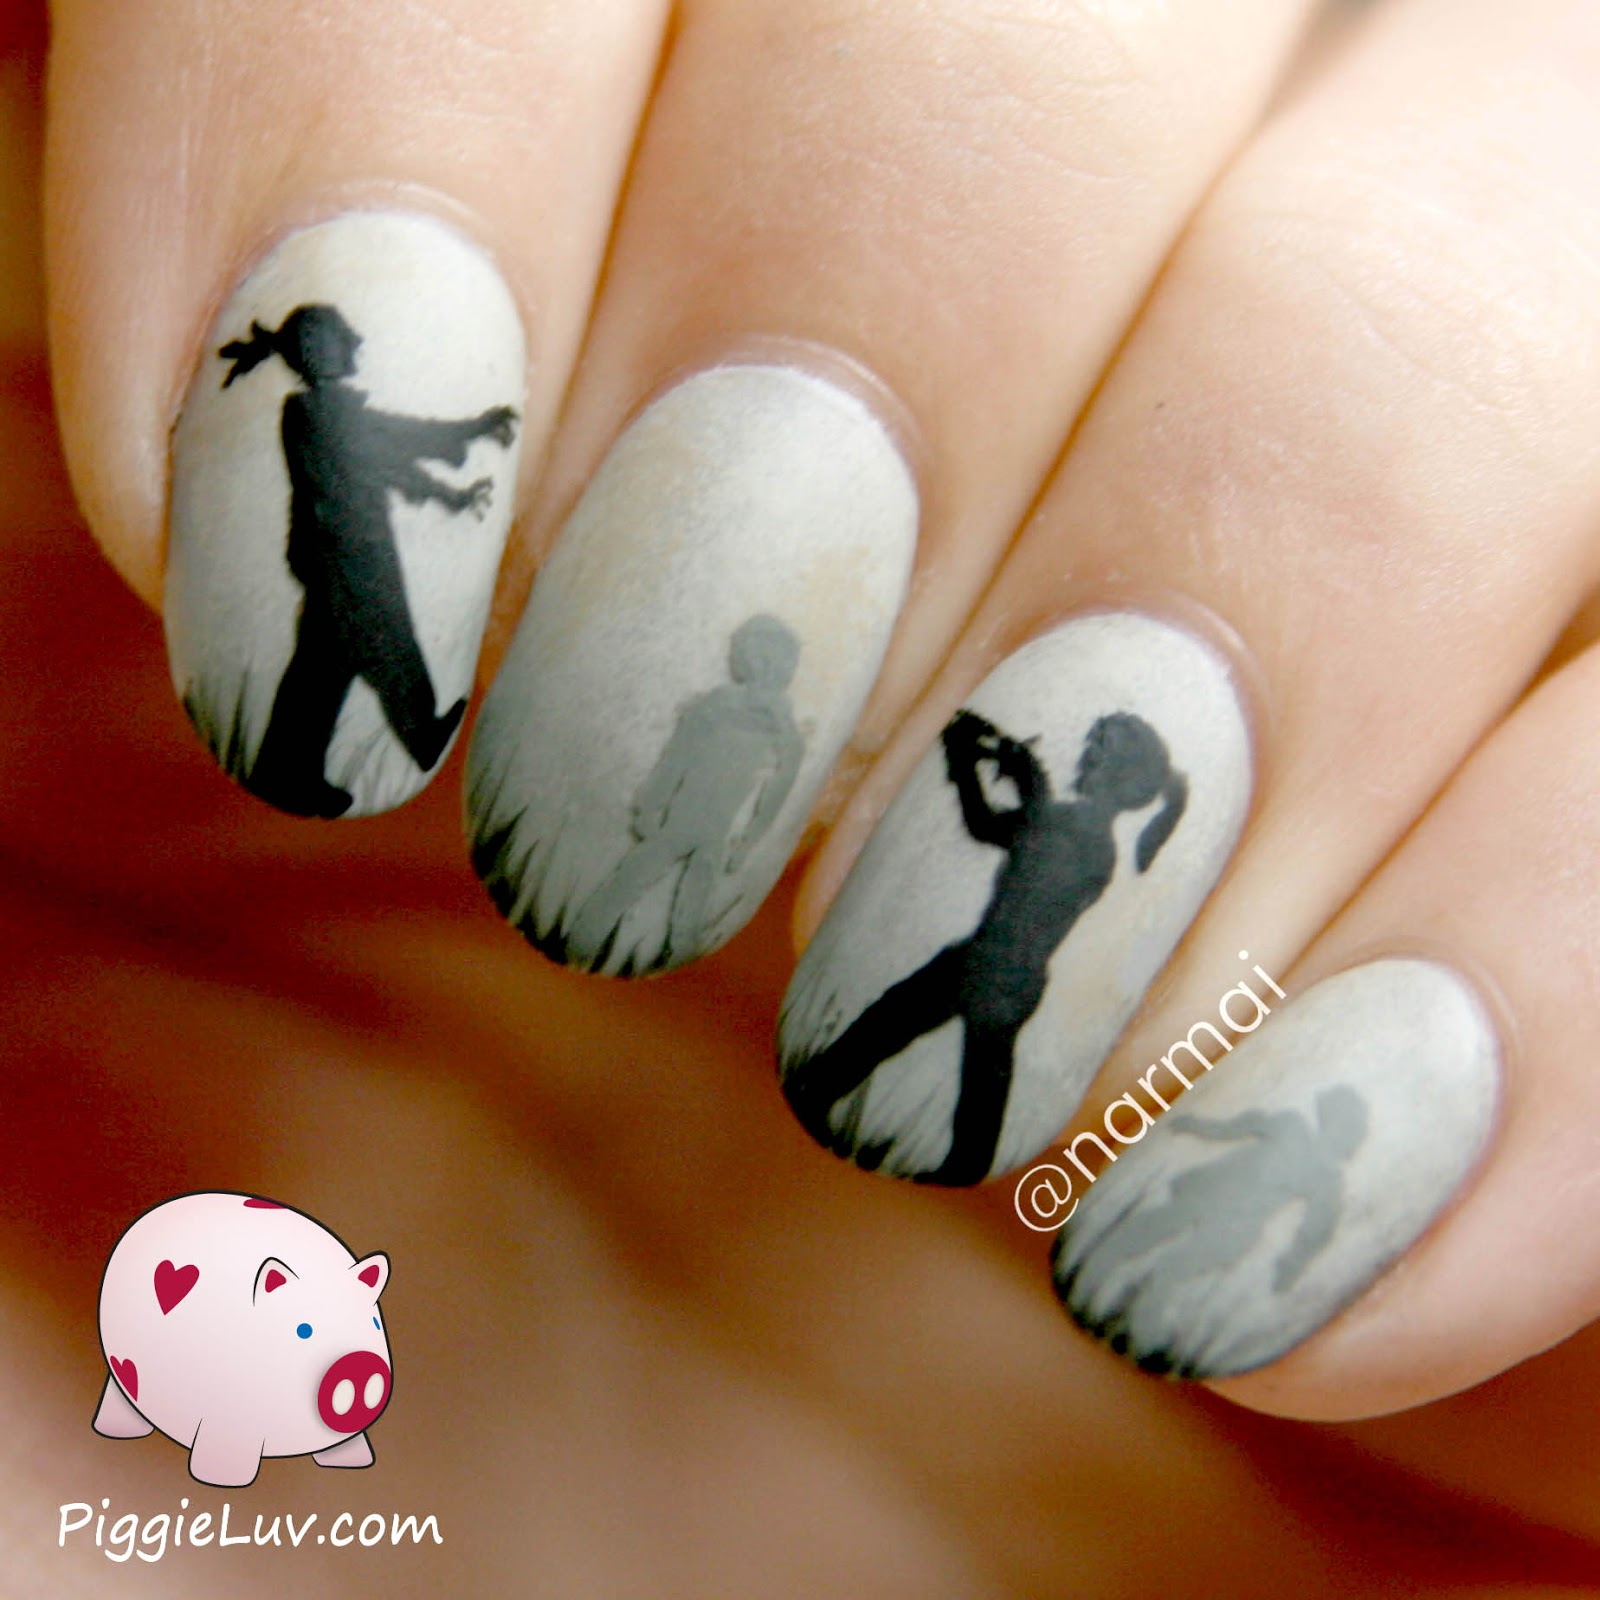 Piggieluv epic zombie story 5 manis video tutorial epic zombie story 5 manis video tutorial prinsesfo Choice Image